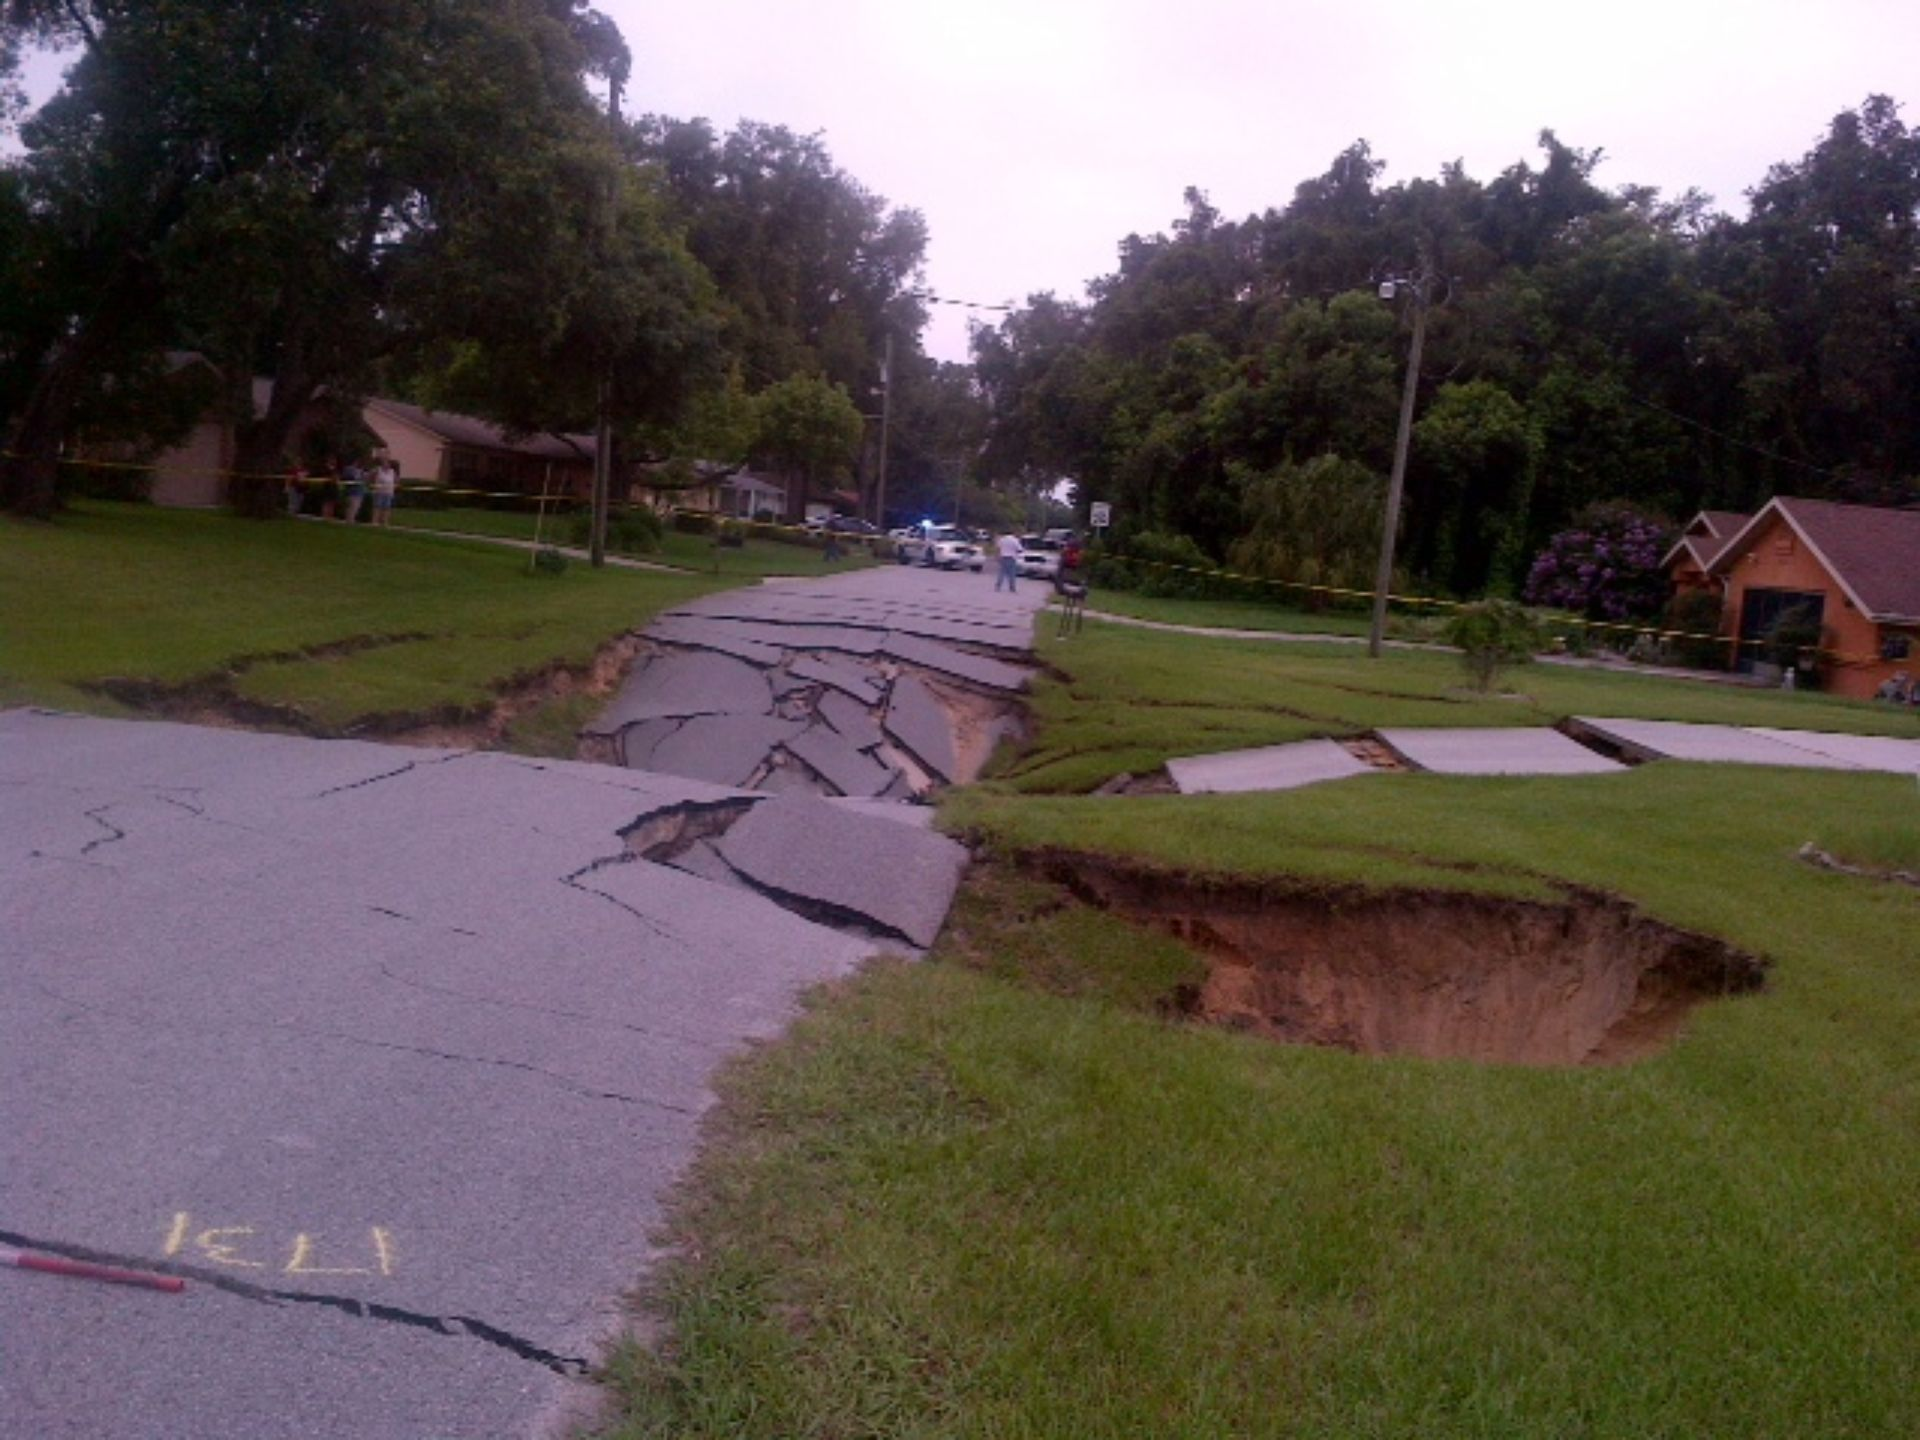 This monster sinkhole in Spring Hill, Florida measures now 40 x 40 yards long and is 30 feet deep. Amazing!, sinkhole, sinkhole formation, us sinkhole july 2014, florida sinkhole july 2014, spring hill giant sinkhole july 19 2014, giant sinkhole spring hill photo, photo of giant sinkhole in spring hill florida july 2014, video giant sinkhole spring hill july 2014, florida sinkhole florida july 2014, new sinkhole florida july 2014, sinkhole florida july 2014, giant sinkhole florida july 2014, giant sinkhole Spring Hill florida, Monster Sinkhole Swallows Roads In Spring Hill, Florida - July 19 2014, Terrifying Sinkhole Swallows Roads In Spring Hill, Florida - July 19 2014, This monster sinkhole in Spring Hill, Florida measures now 40 x 40 yards long and is 30 feet deep. Amazing!, sinkhole, sinkhole formation, us sinkhole july 2014, florida sinkhole july 2014, spring hill giant sinkhole july 19 2014, giant sinkhole spring hill photo, photo of giant sinkhole in spring hill florida july 2014, video giant sinkhole spring hill july 2014, florida sinkhole florida july 2014, new sinkhole florida july 2014, sinkhole florida july 2014, giant sinkhole florida july 2014, giant sinkhole Spring Hill florida, Monster sinkhole swallows road and cracks home in Spring Hill, Florida on July 19 2014. When will this sinkhole apocalypse end?